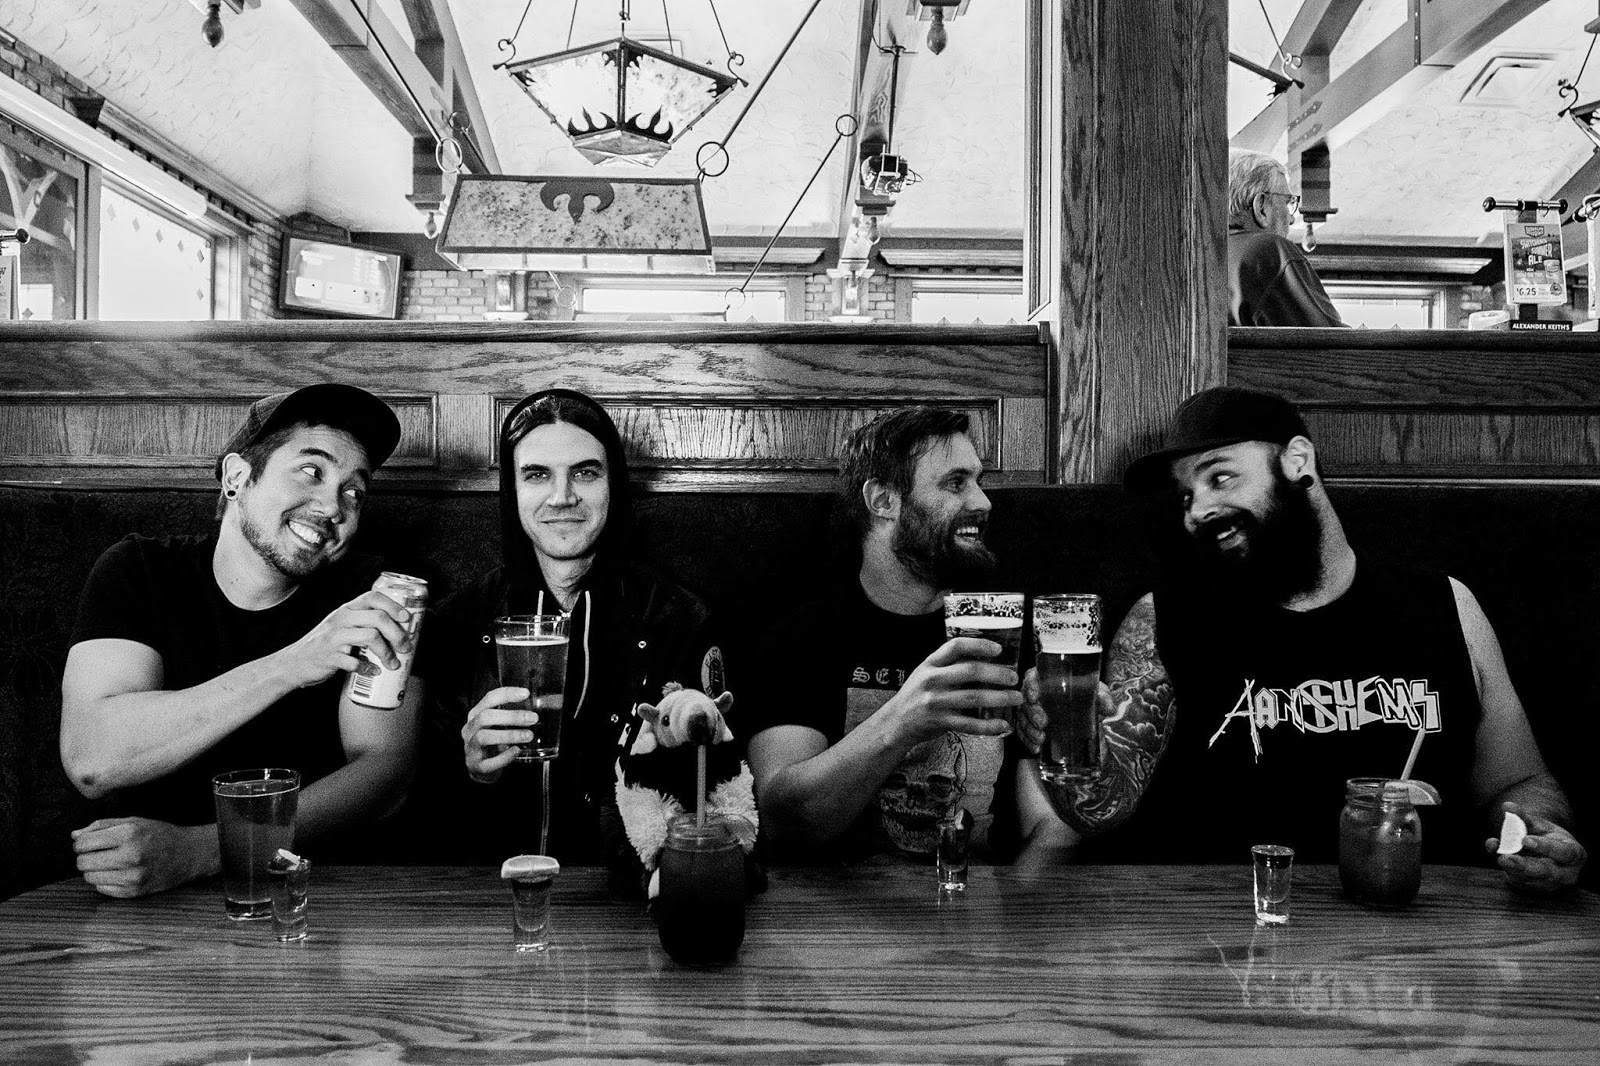 Melodic Punk Style : AntEater (Canada skate punk) release new video